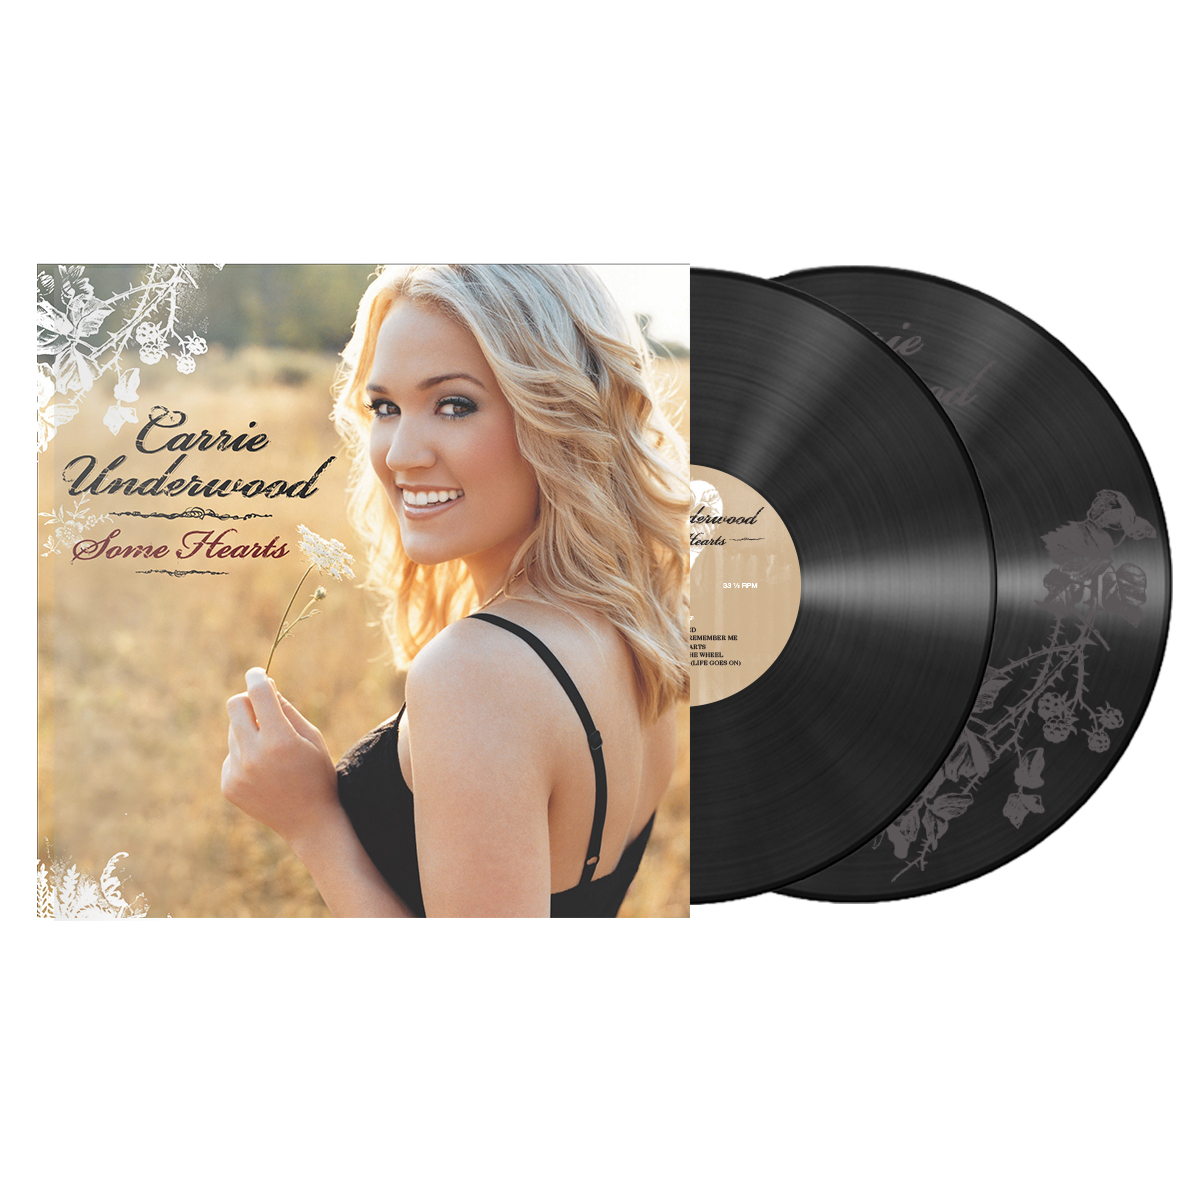 Carrie Underwood - Some Hearts (2-disc) LP